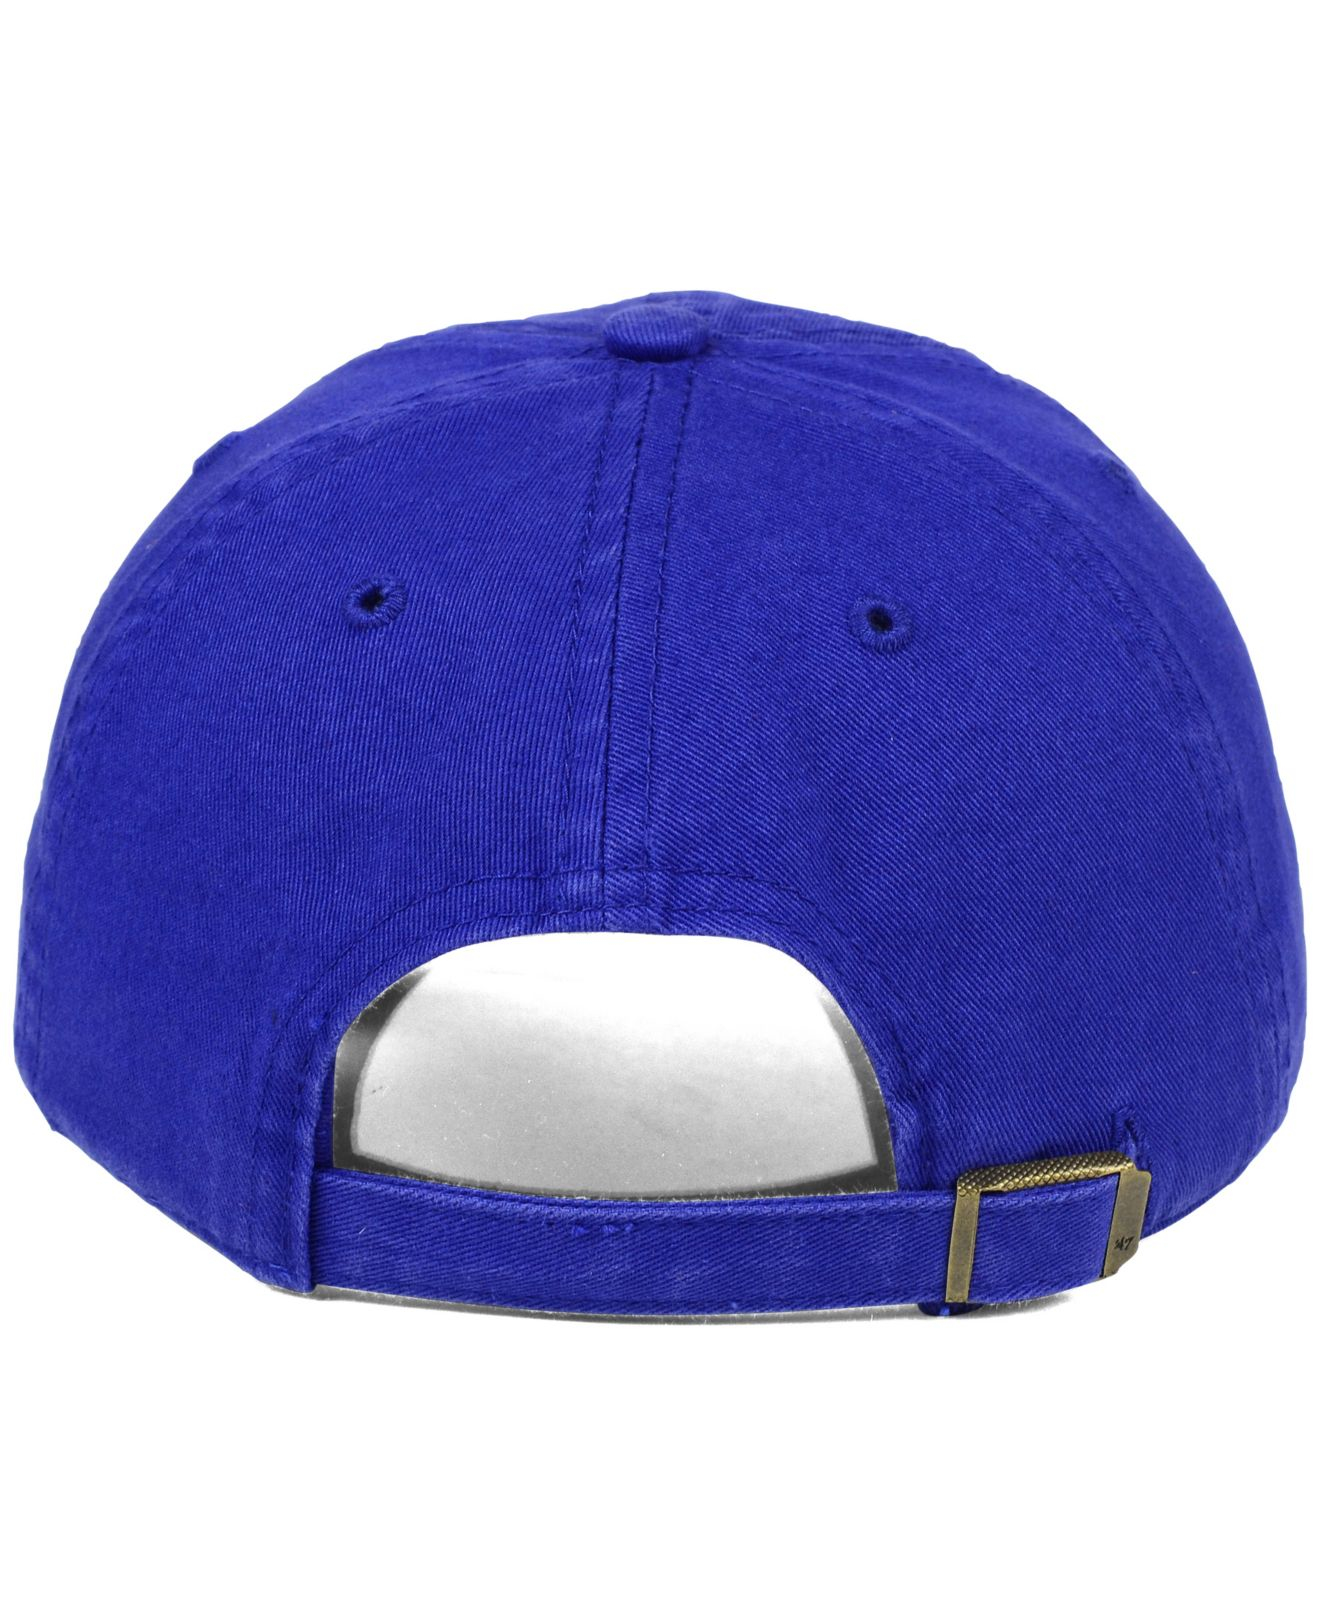 Lyst - 47 Brand Usa Soccer Clean Up Cap in Blue for Men a5647d082664